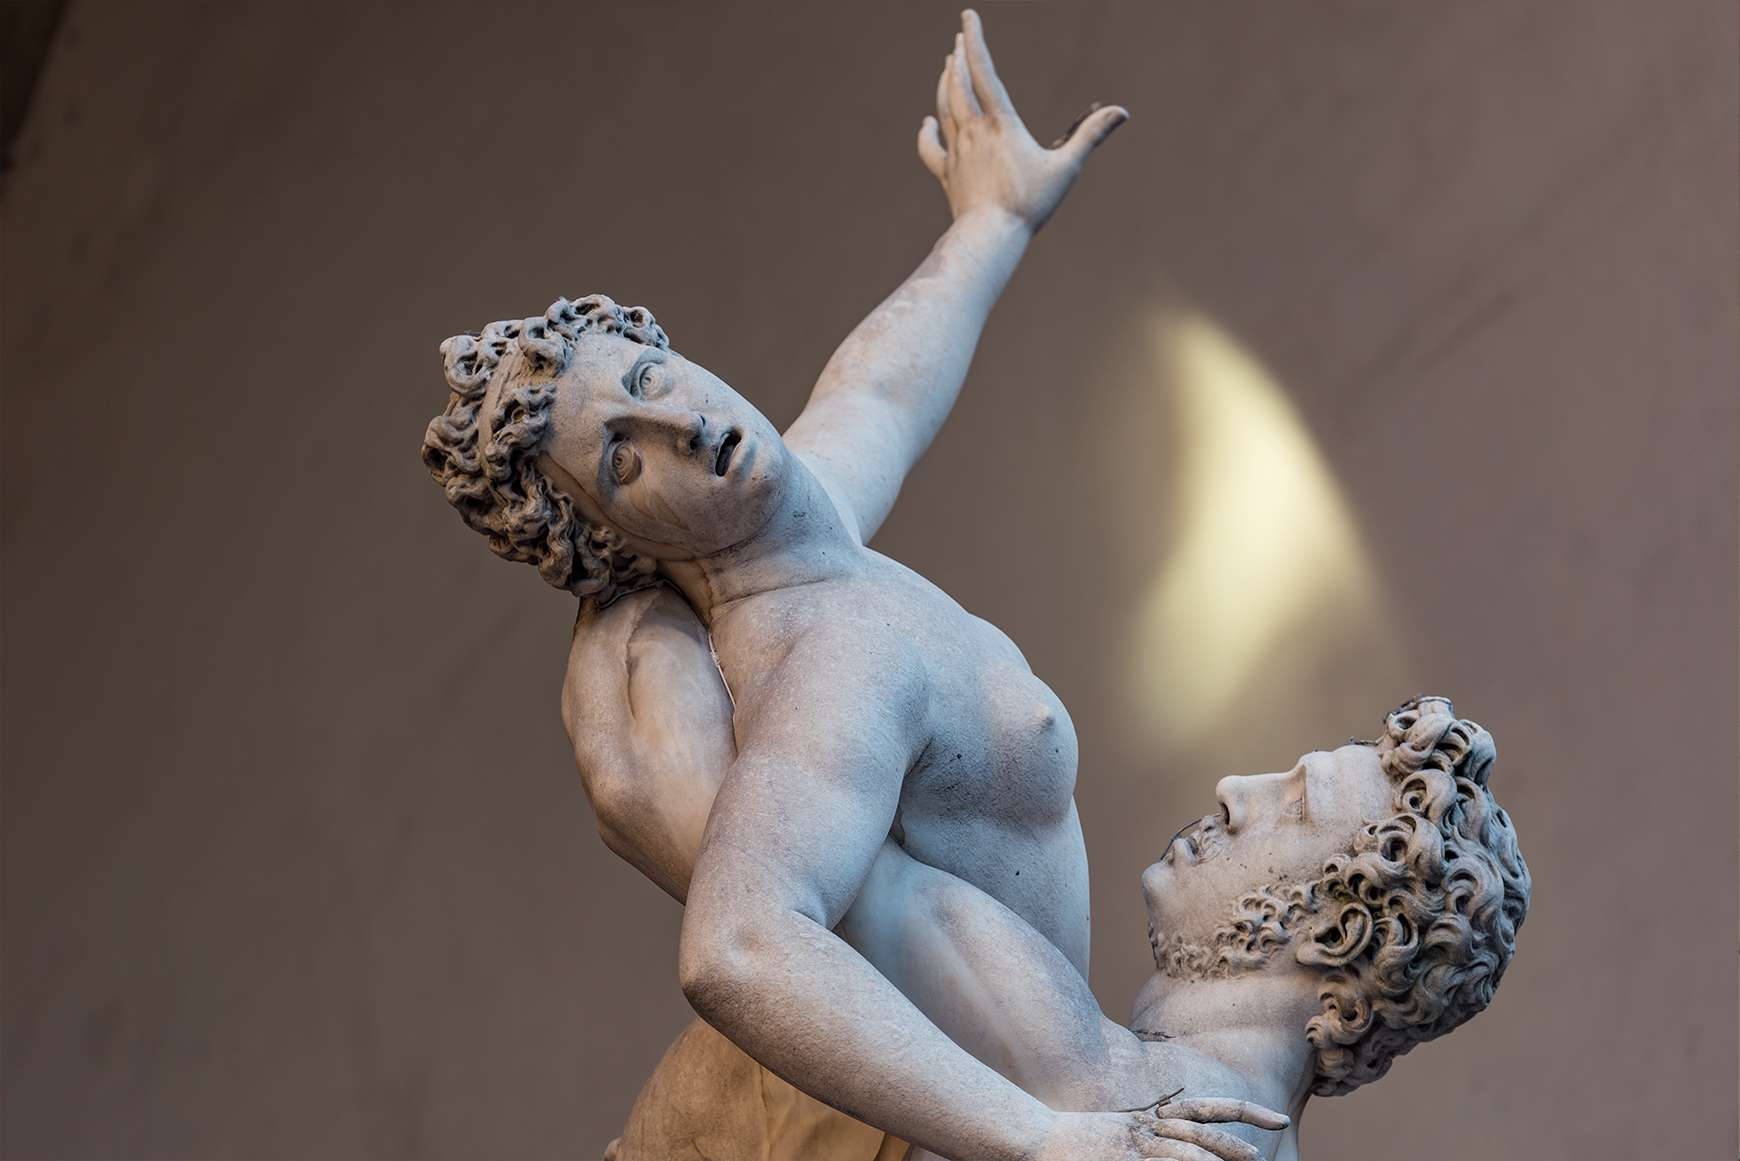 Statue of Intertwined bodies at the Galleria dell 'Accademia in Florence